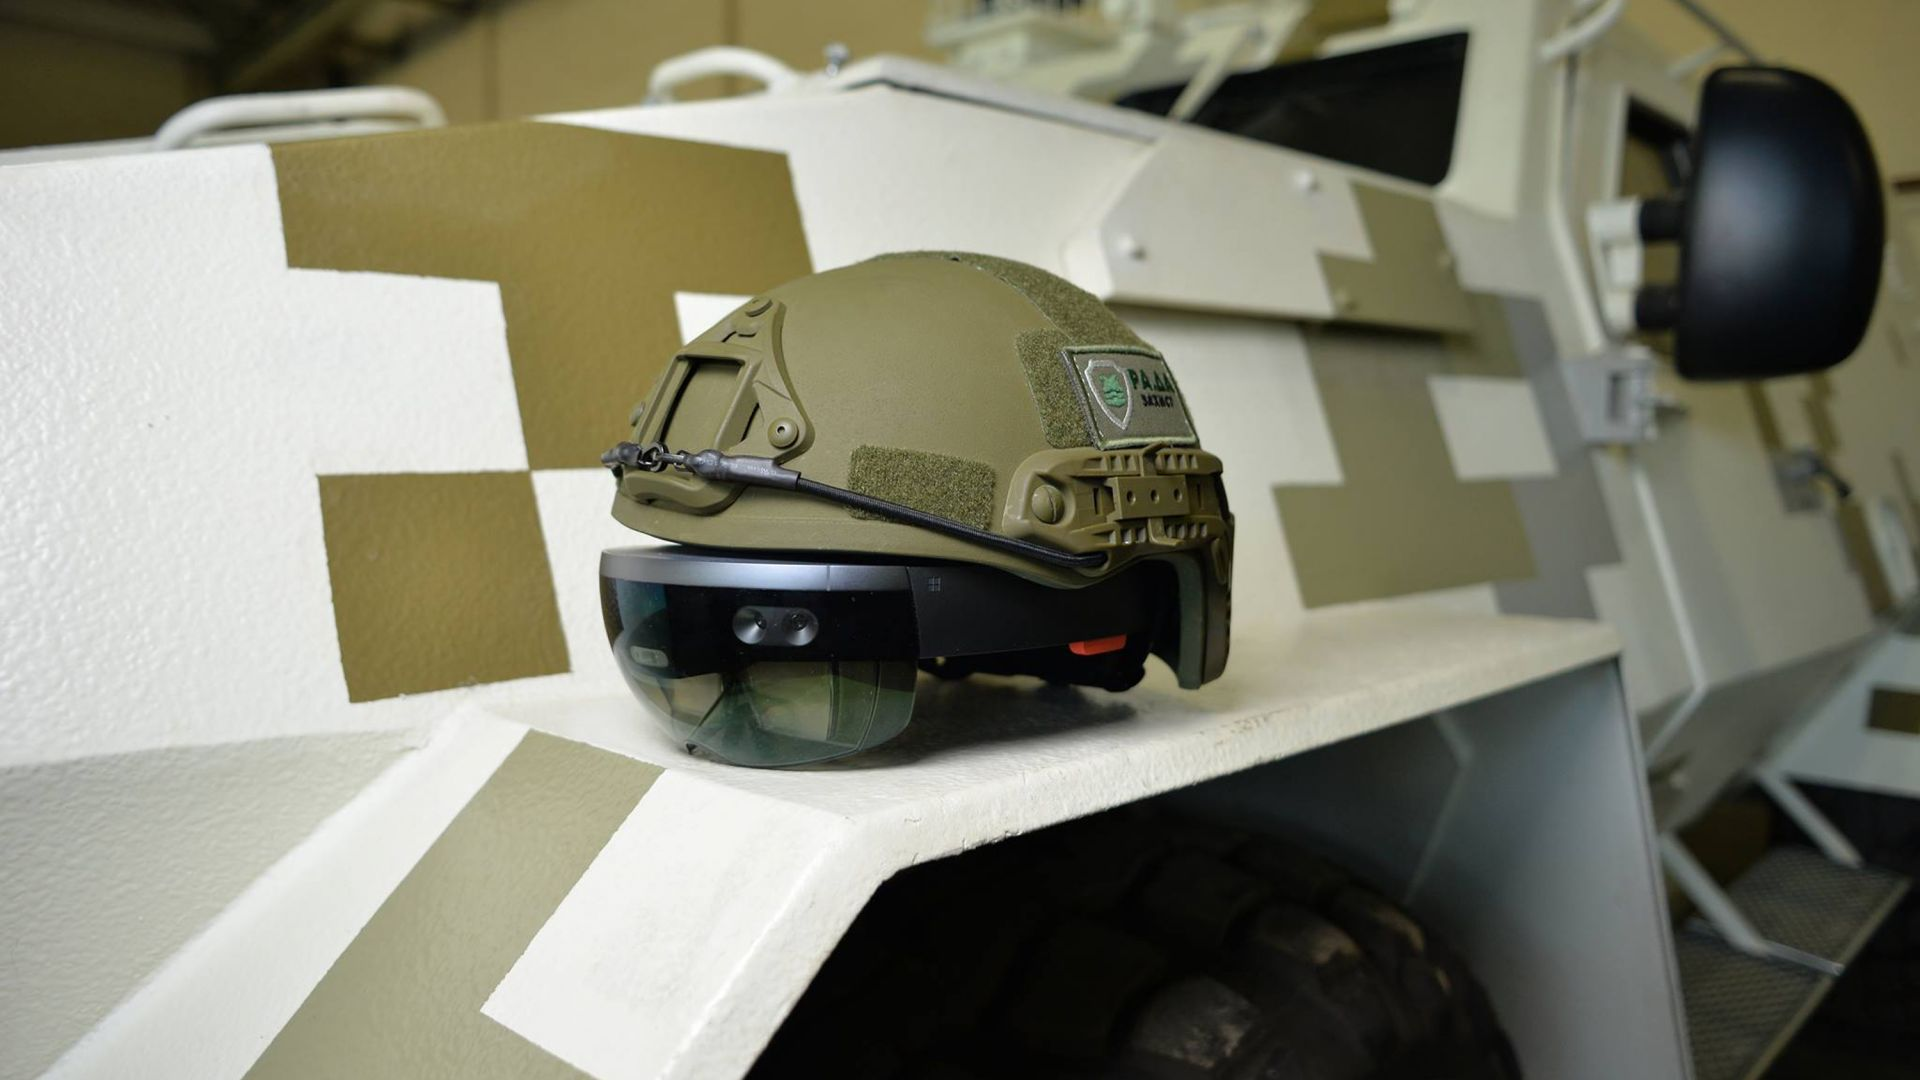 Шлем, ВР, HoloLens, ВСУ, HoloLens, helmet, LimpidArmor, Armed Forces of Ukraine